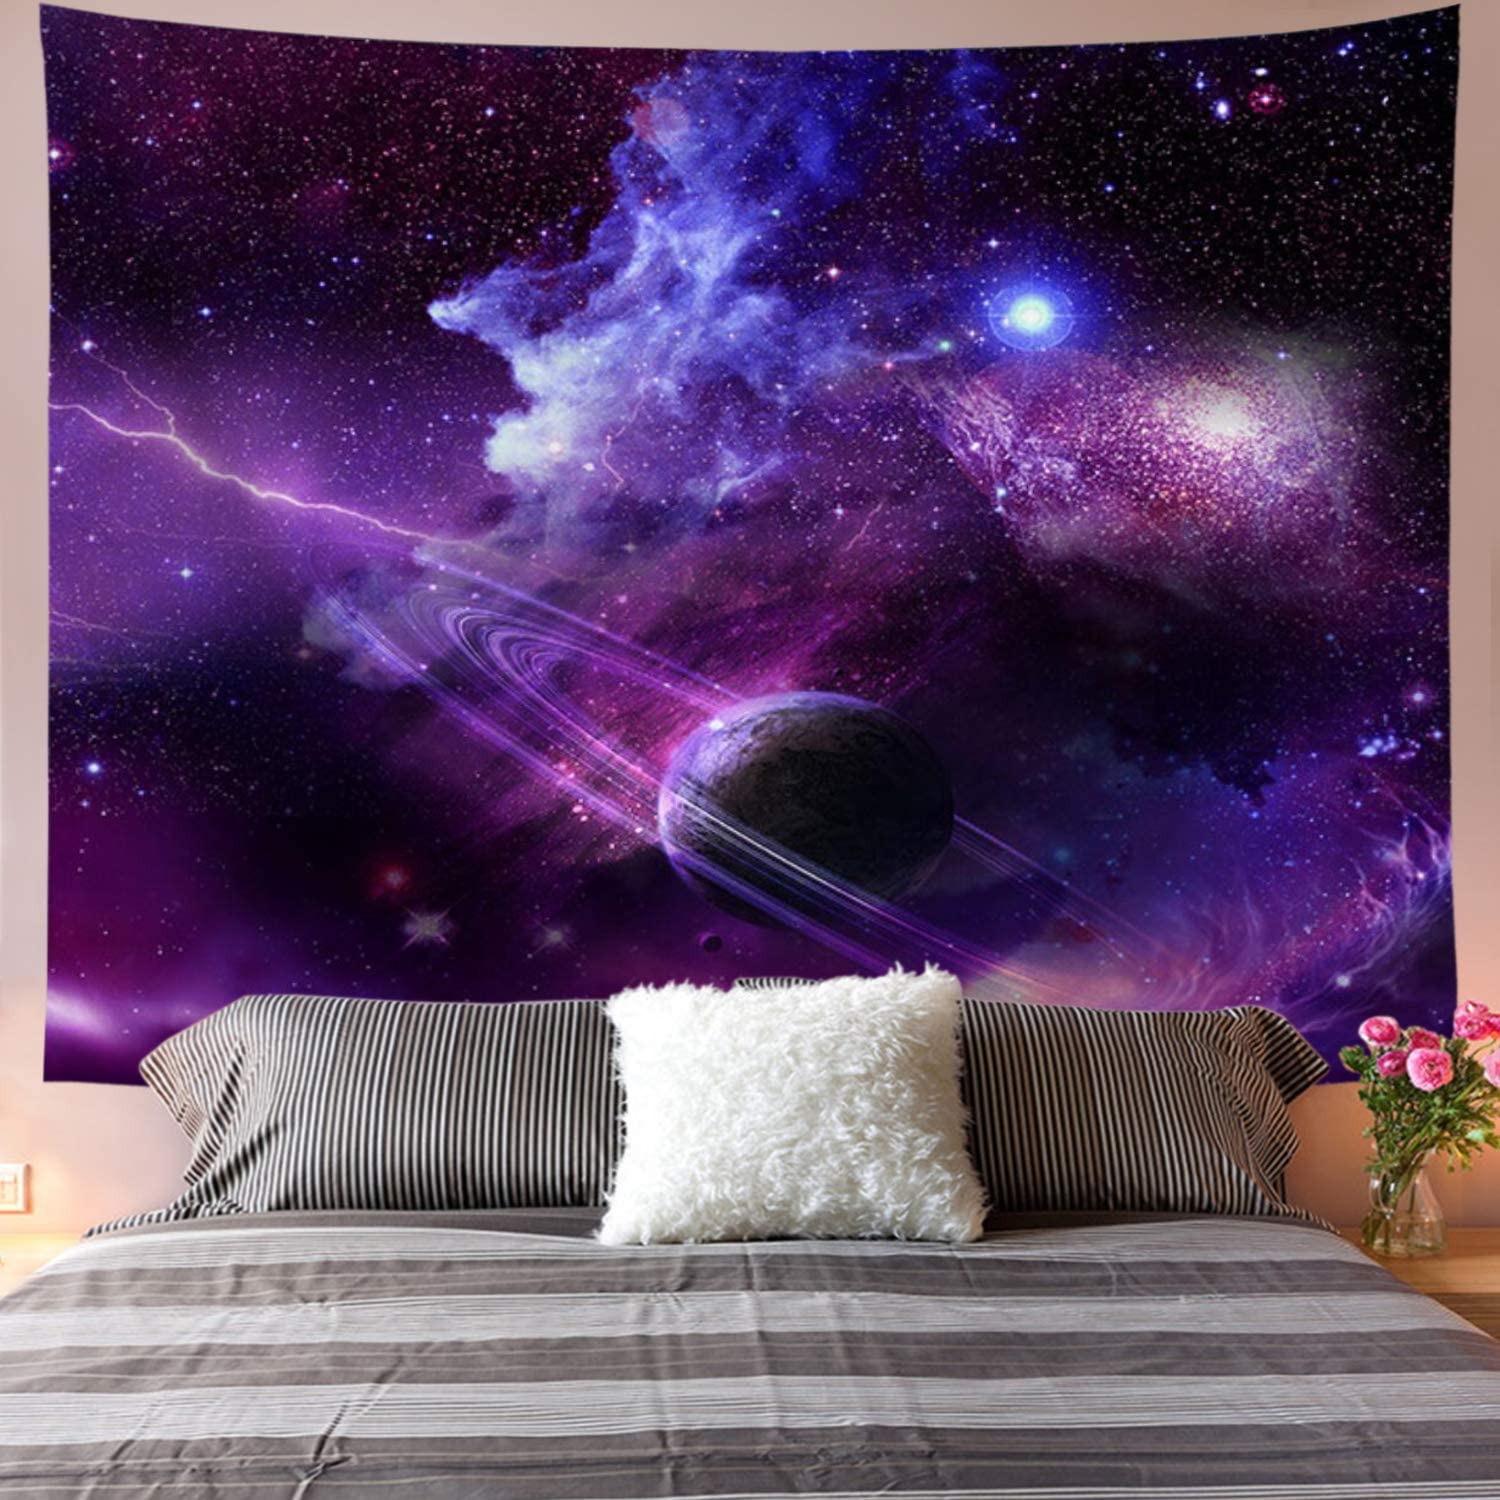 Galoker Galaxy Tapestry Starry Sky Tapestry Psychedelic Tapestry Space Landscape Tapestry Purple Starry Art Print Wall Hanging Tapestry for Home Decor(H70.8×W92.5 inches)